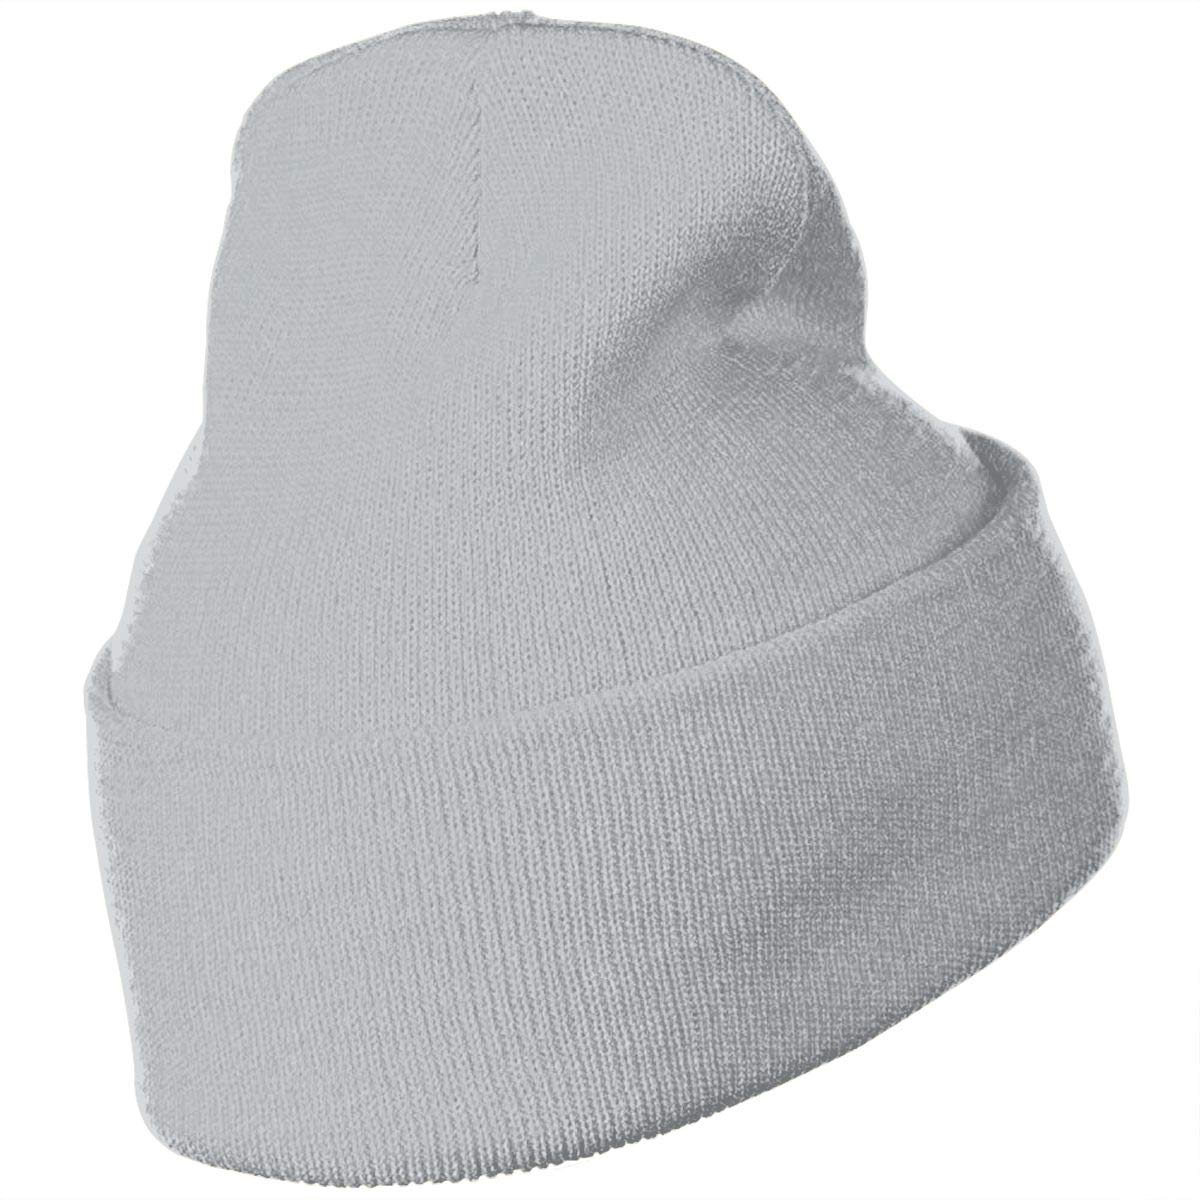 JimHappy Coat of Arms of Cape Verde Hat for Men and Women Winter Warm Hats Knit Slouchy Thick Skull Cap